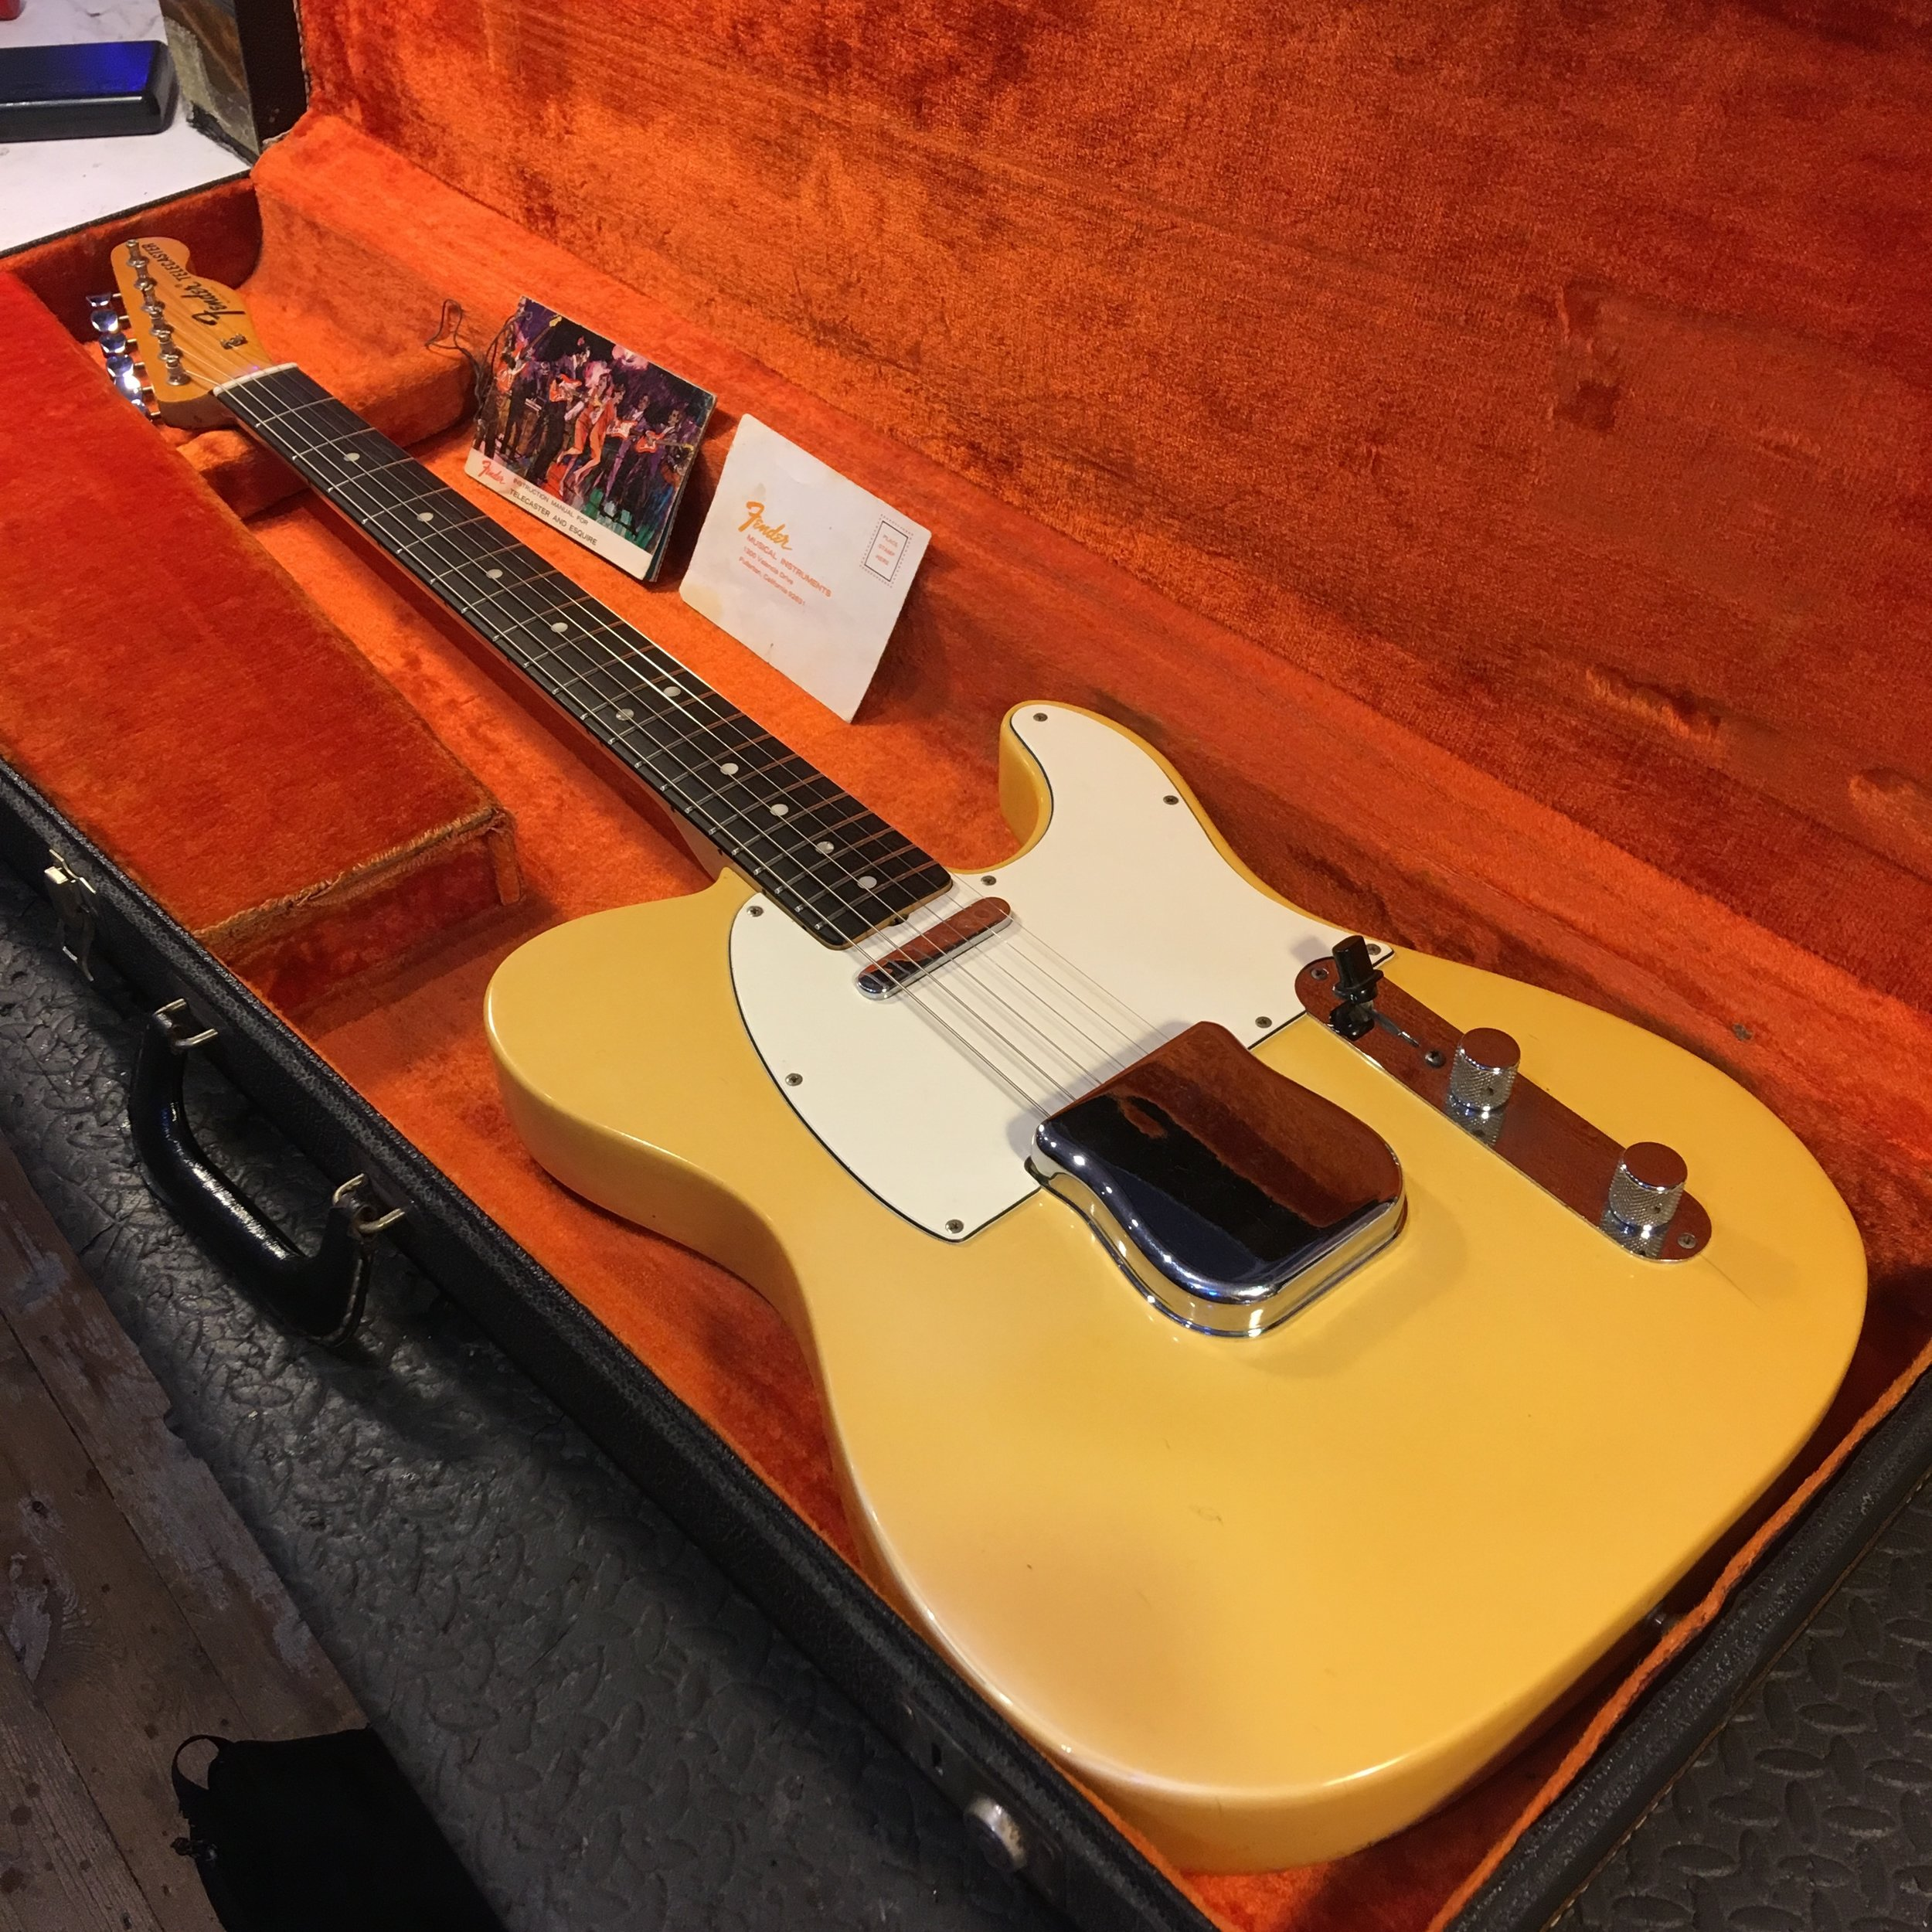 This had to be one of the cleanest 1971 Fender Telecasters I'd seen in a while, but boy did it need some new frets! Sorry no before pictures on this one but click the picture for a few after the job was done